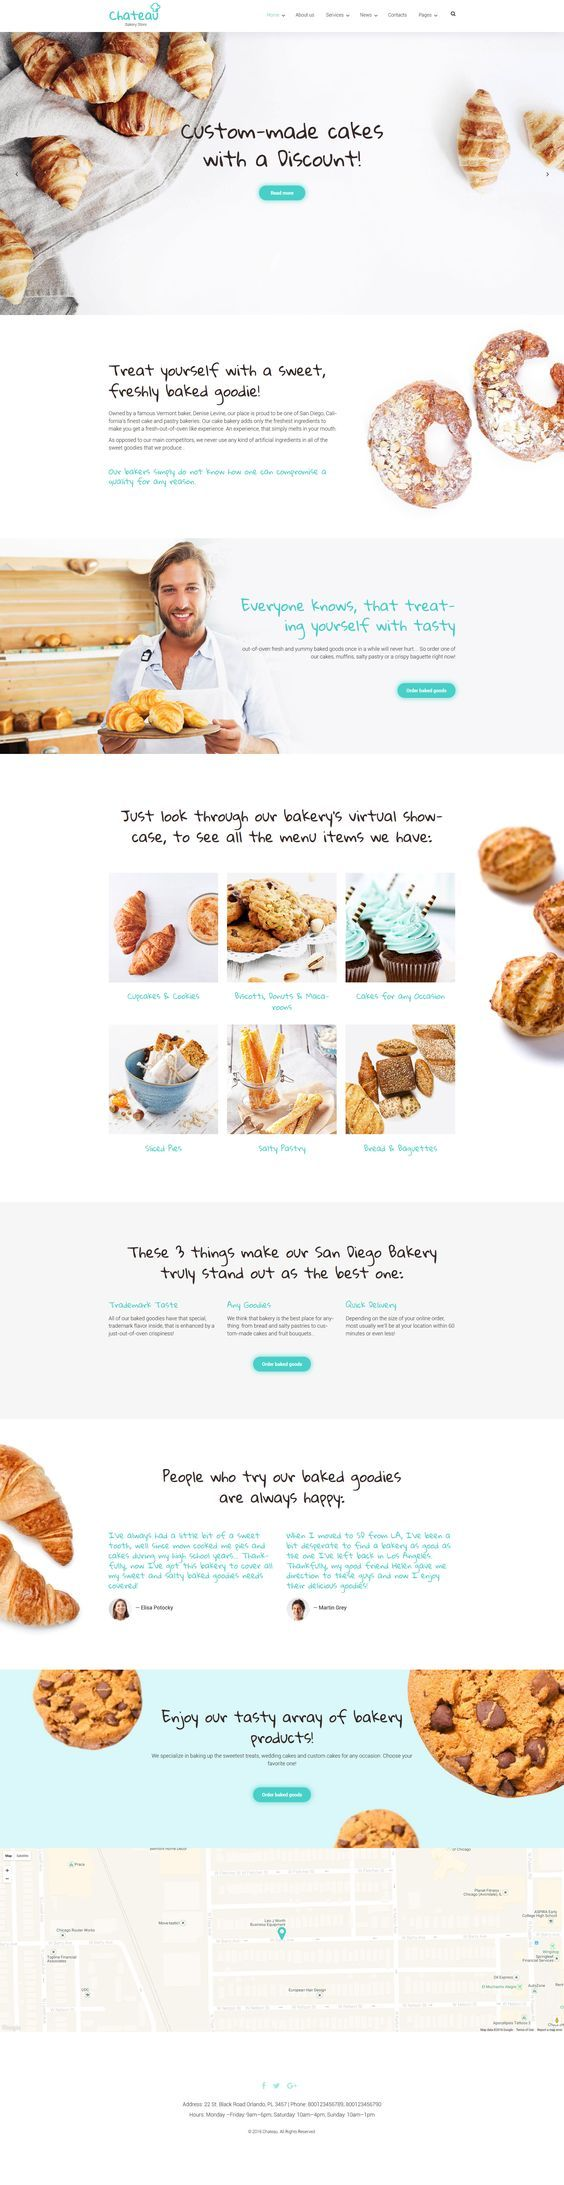 Chateau is a well-coded bakery WordPress template licensed under GPL v3.0. The theme is built with Power, i.e. TemplateMonster's custom drag-and-drop page builder pre-loaded with 25+ modules, a library of presets, and more features providing for a seamless customization of the layout. Bold, mouthwatering images of pastry lure the attention of the true gourmets. Hand-written fonts add a touch of personality to the template. Logo, headlines, CTAs, and navigation elements are built in tiffany…